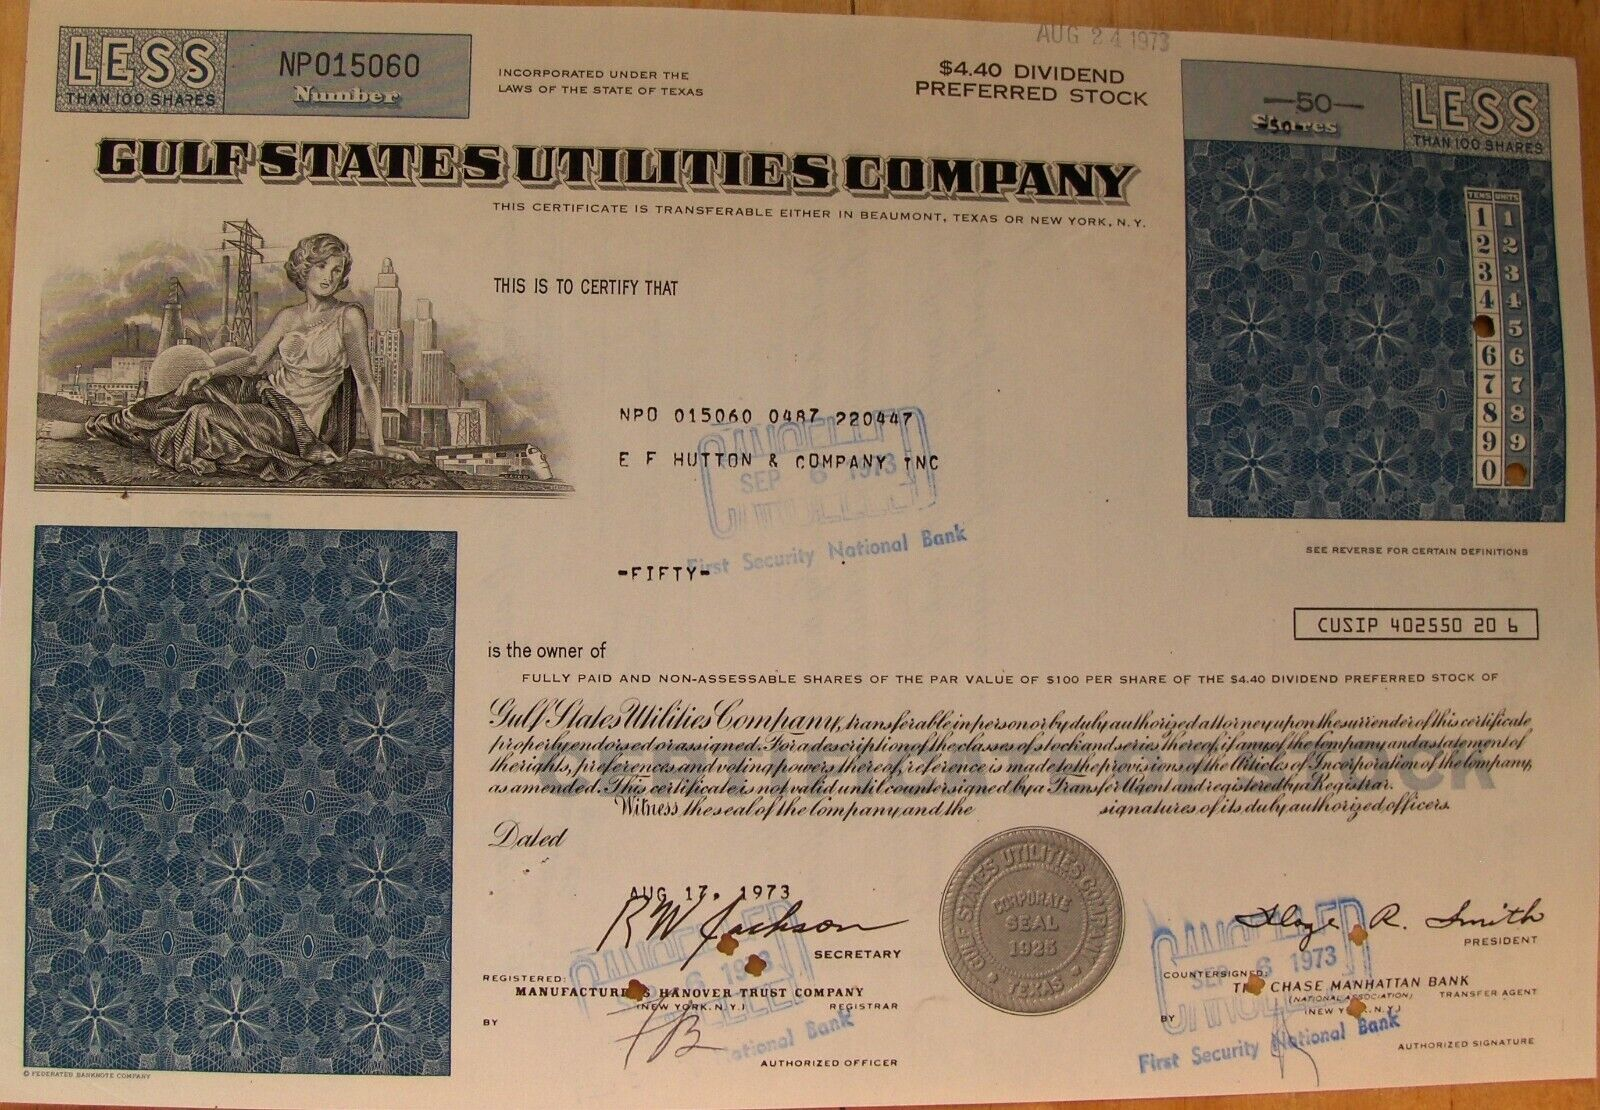 Gulf States Utilities Stock certificate. Less Than 100 Shares 1972-1973